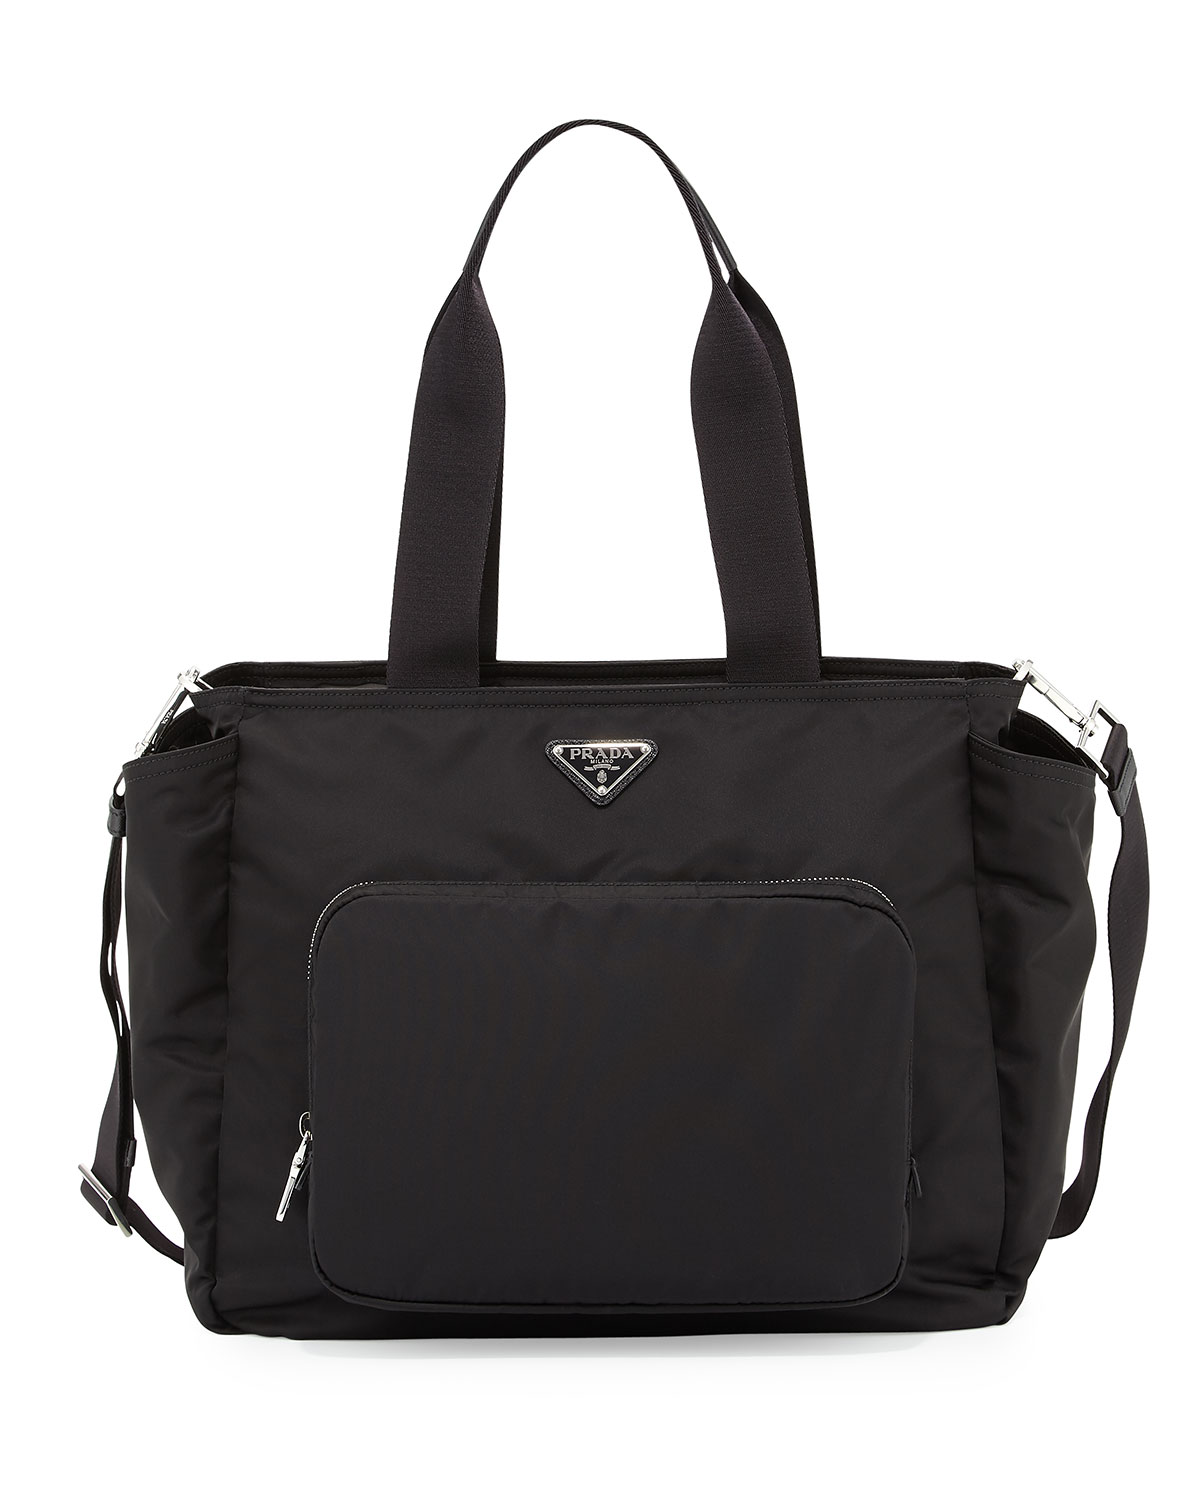 Vela Nylon Baby Bag Black Nero